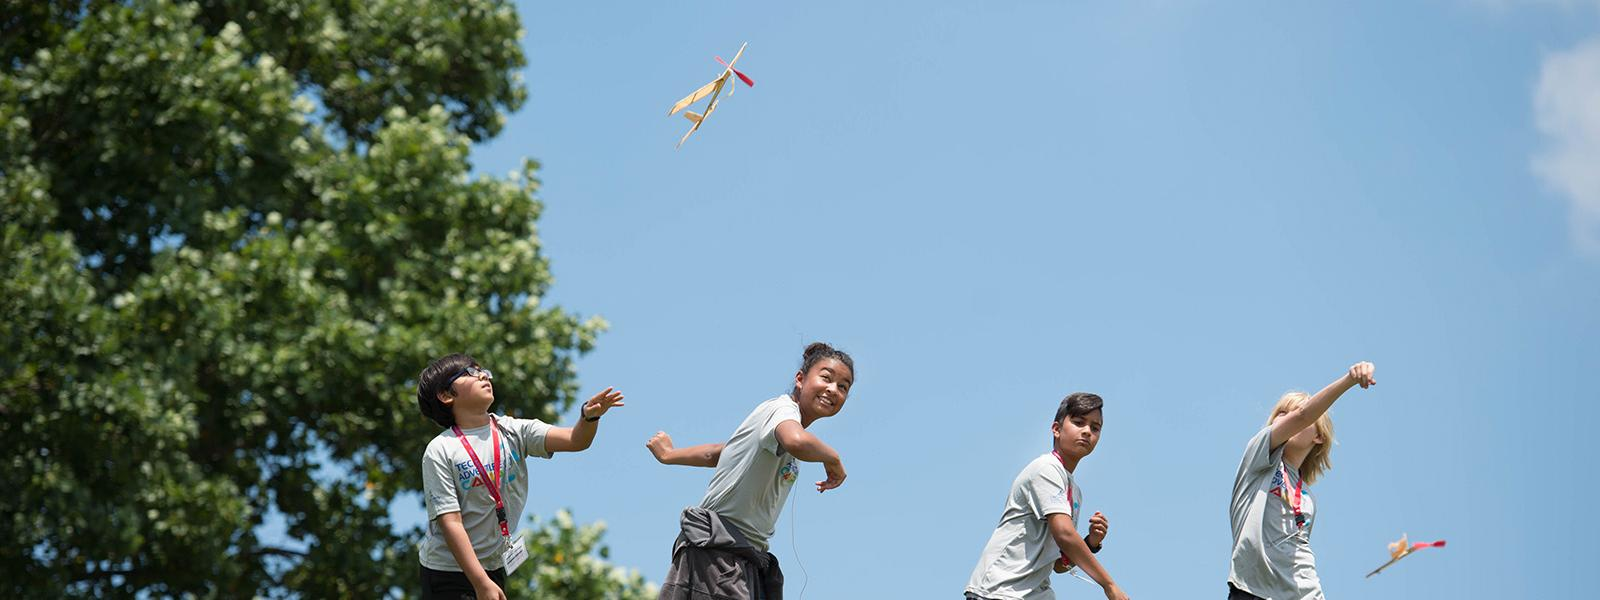 Students in Tech Adventure Camp launch the planes they designed and made using STEM skills.